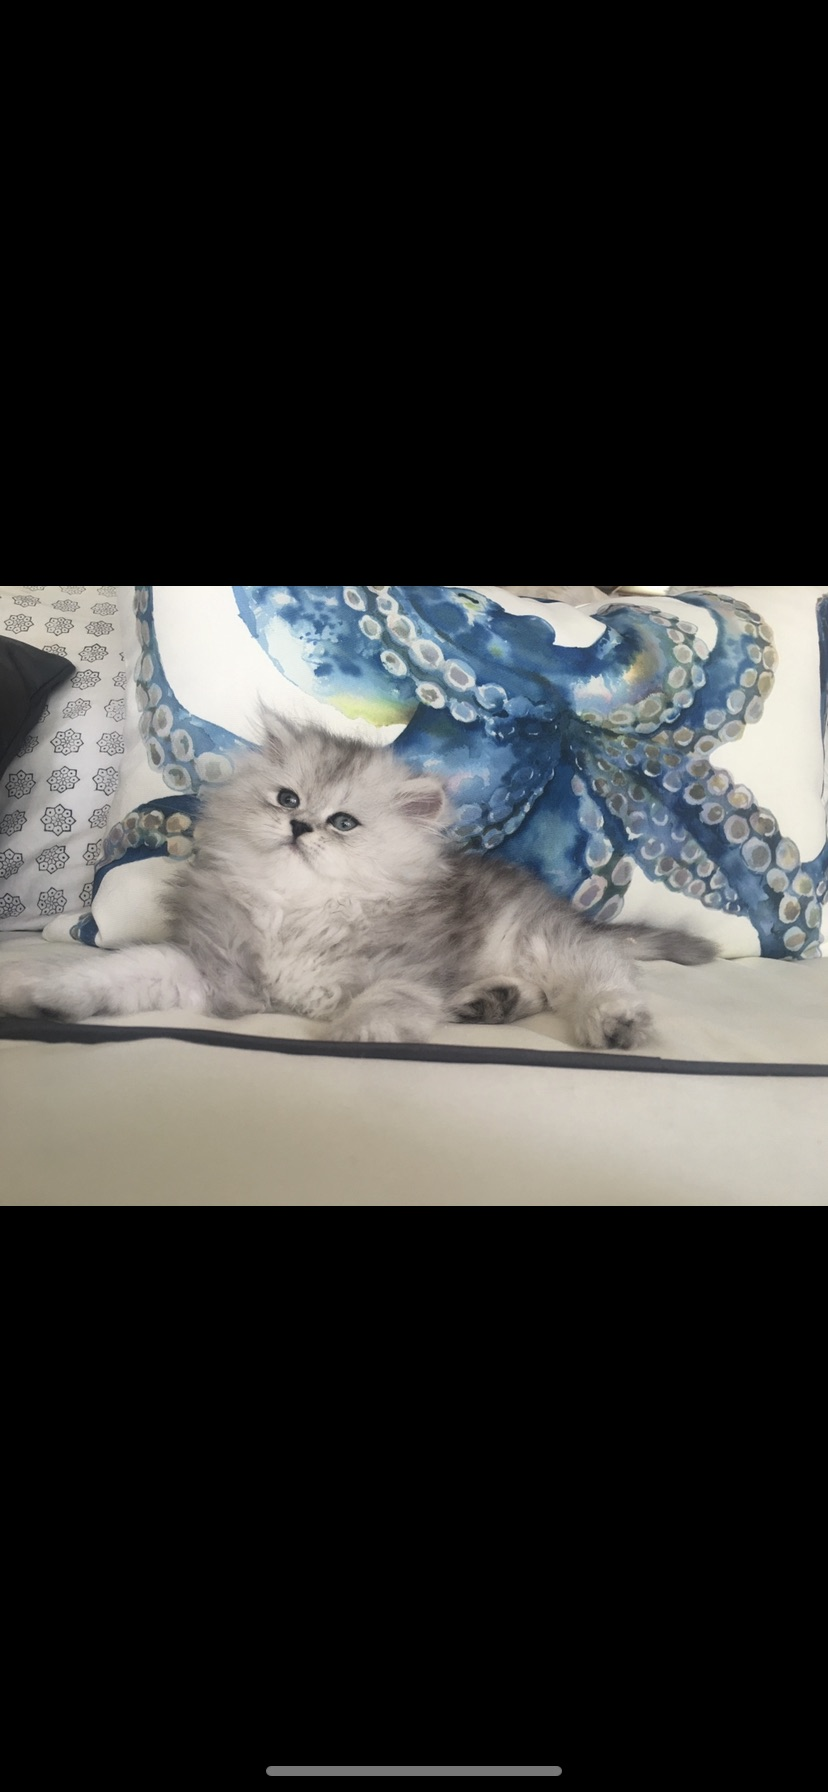 Silver Meows Cattery